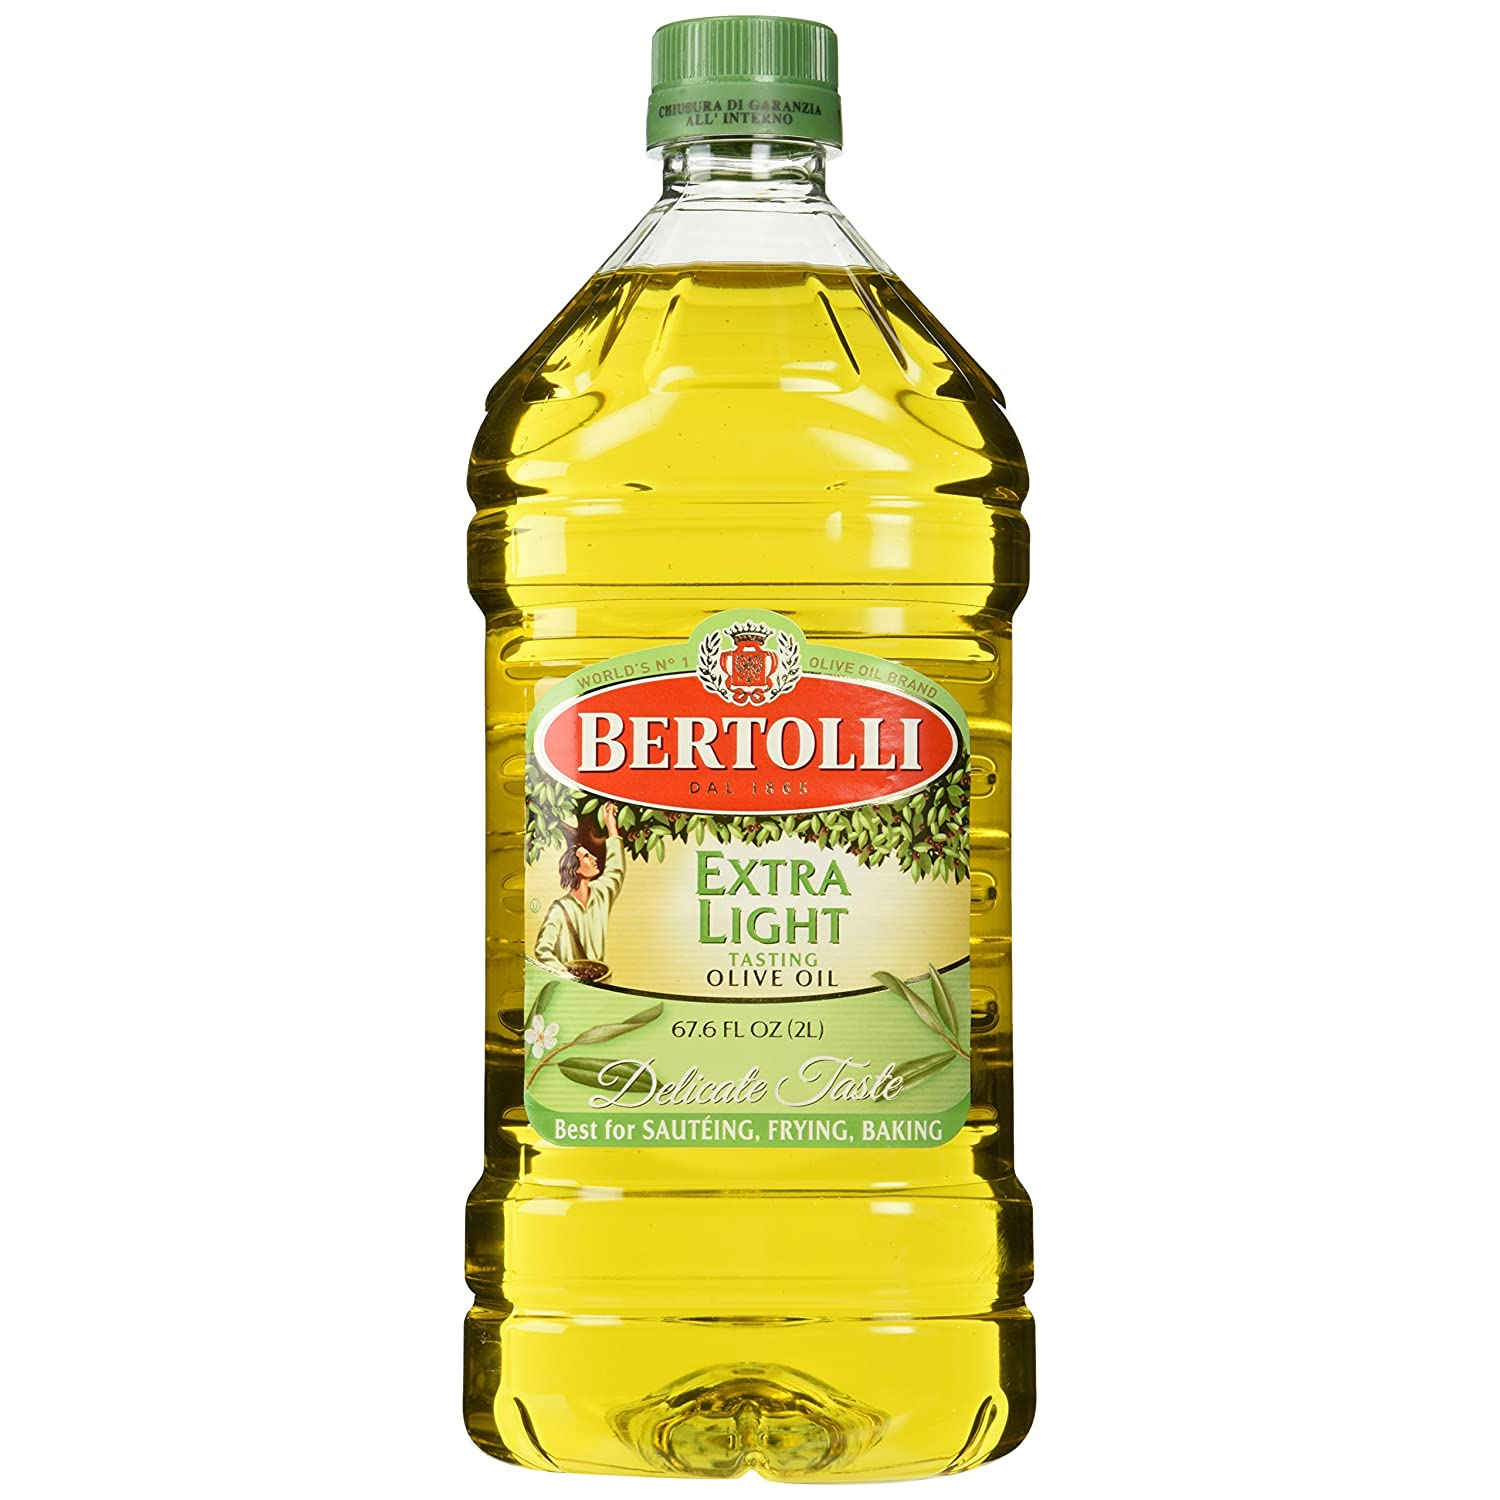 Bertolli Extra Light Olive Oil Review